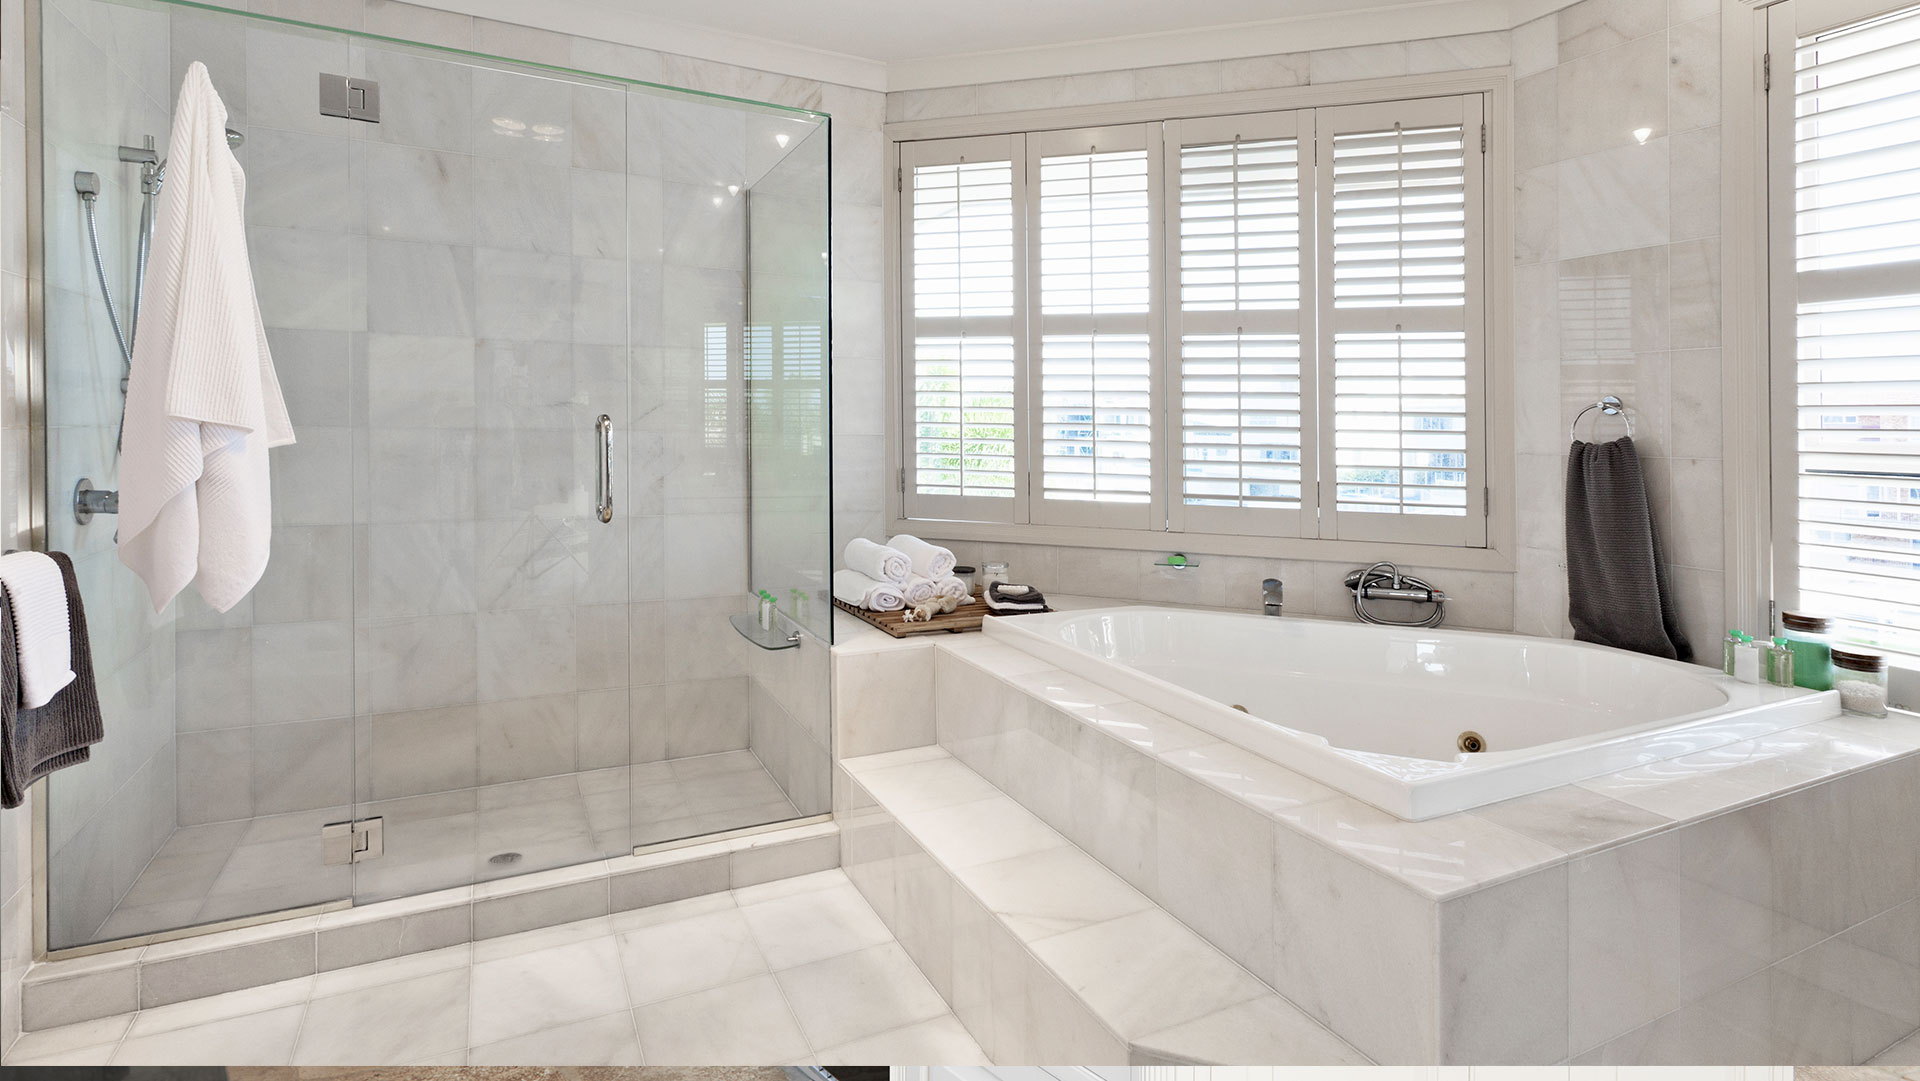 Beautiful Professional Tub Refinishing Thick Bath Reglazing Round Glazing Tubs Cost Of Reglazing Tub Youthful Shower Refinishing Cost BluePorcelain Paint For Bathtubs Home | Calgary Bathroom Remodels, Bathroom Renovations And ..